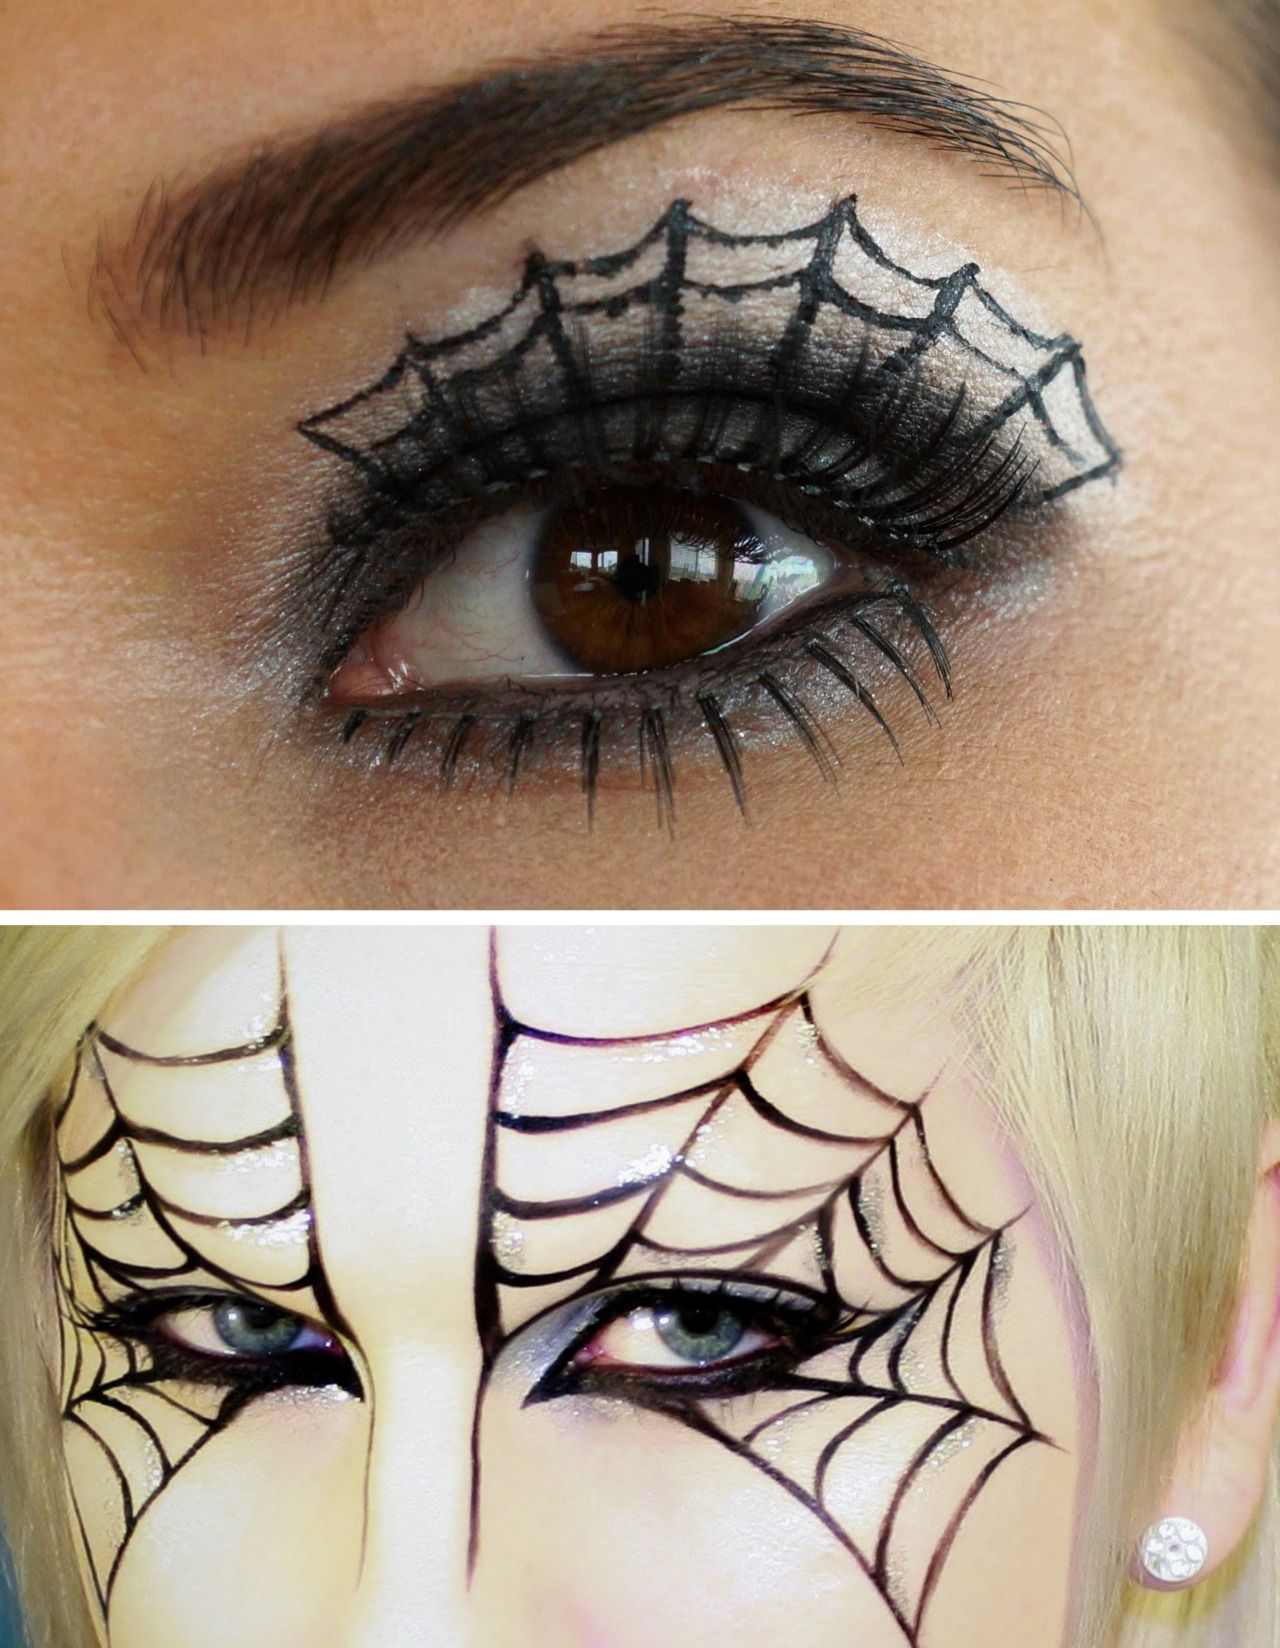 DIY Spiderweb Makeup Tutorials.For DIY Spiderweb Makeup, you can ...